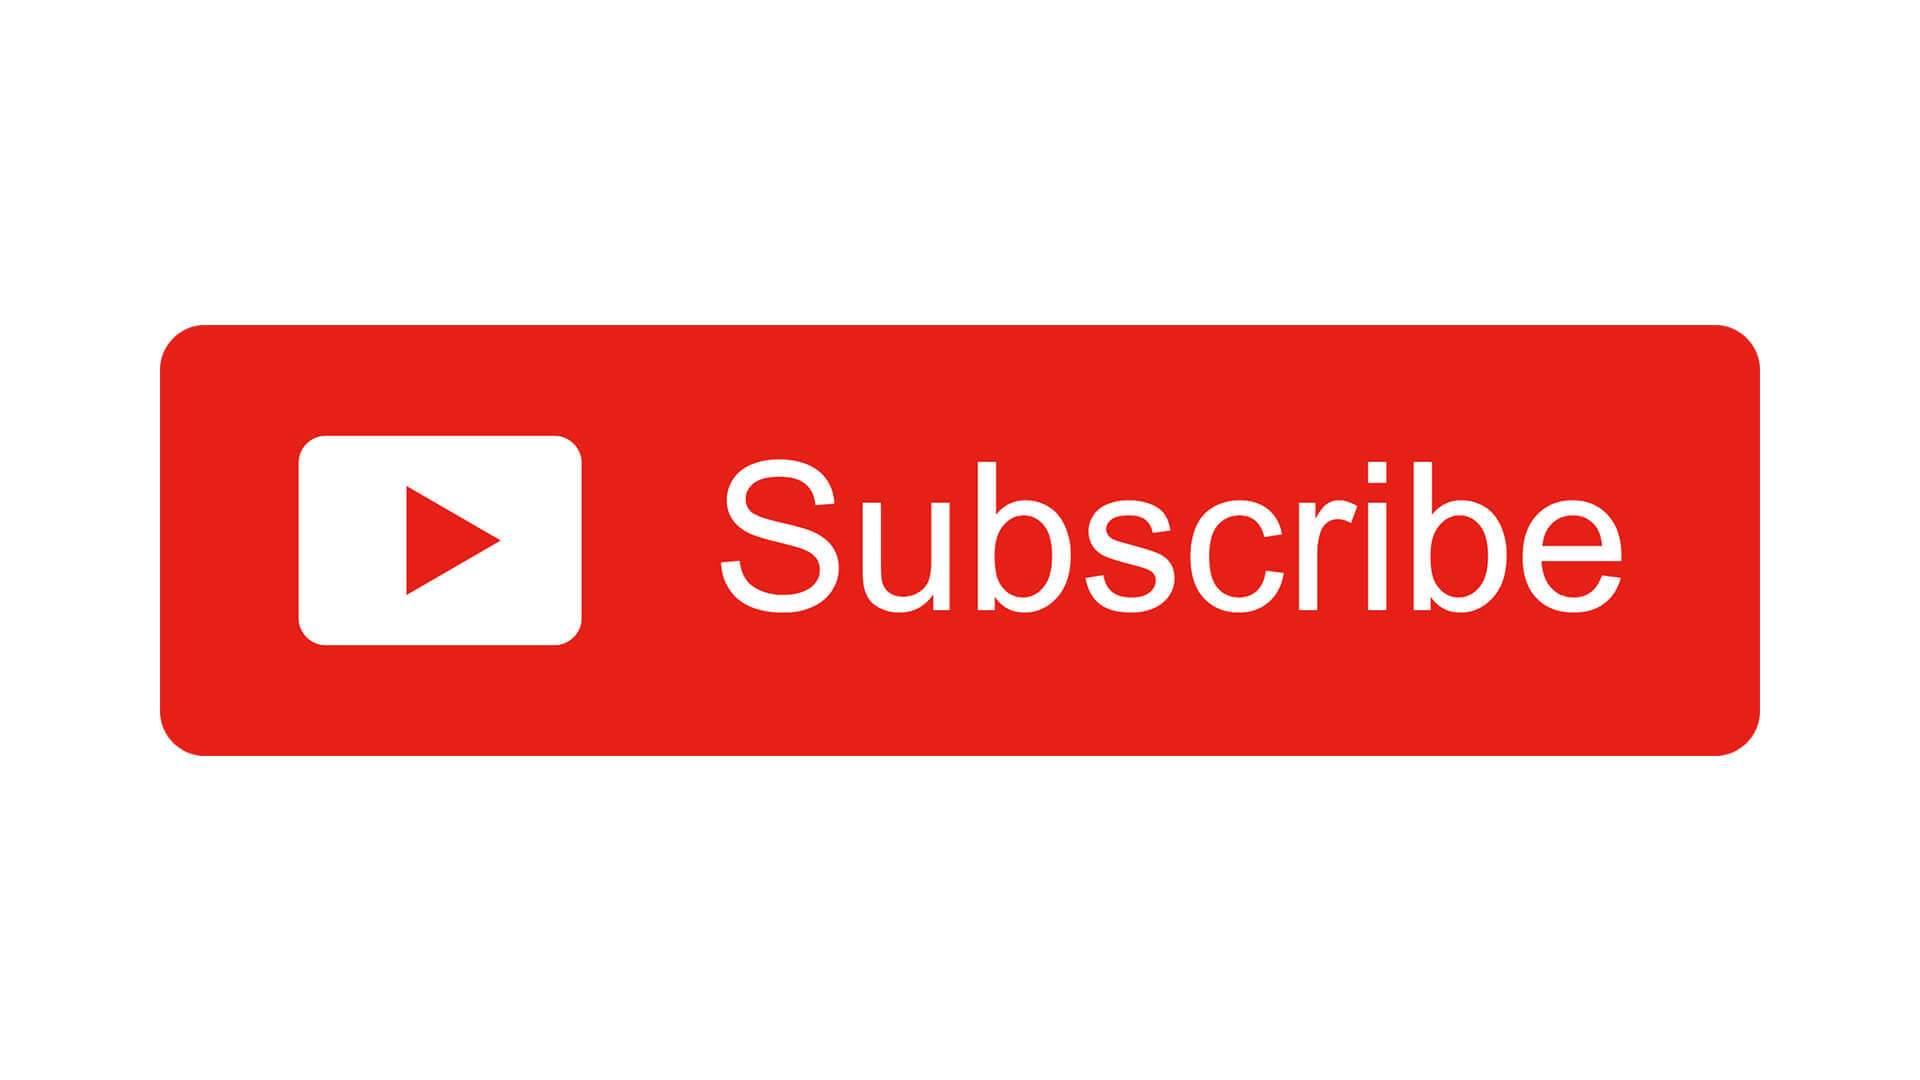 YouTube Subscribe Button Free Download #1 By AlfredoCreates com